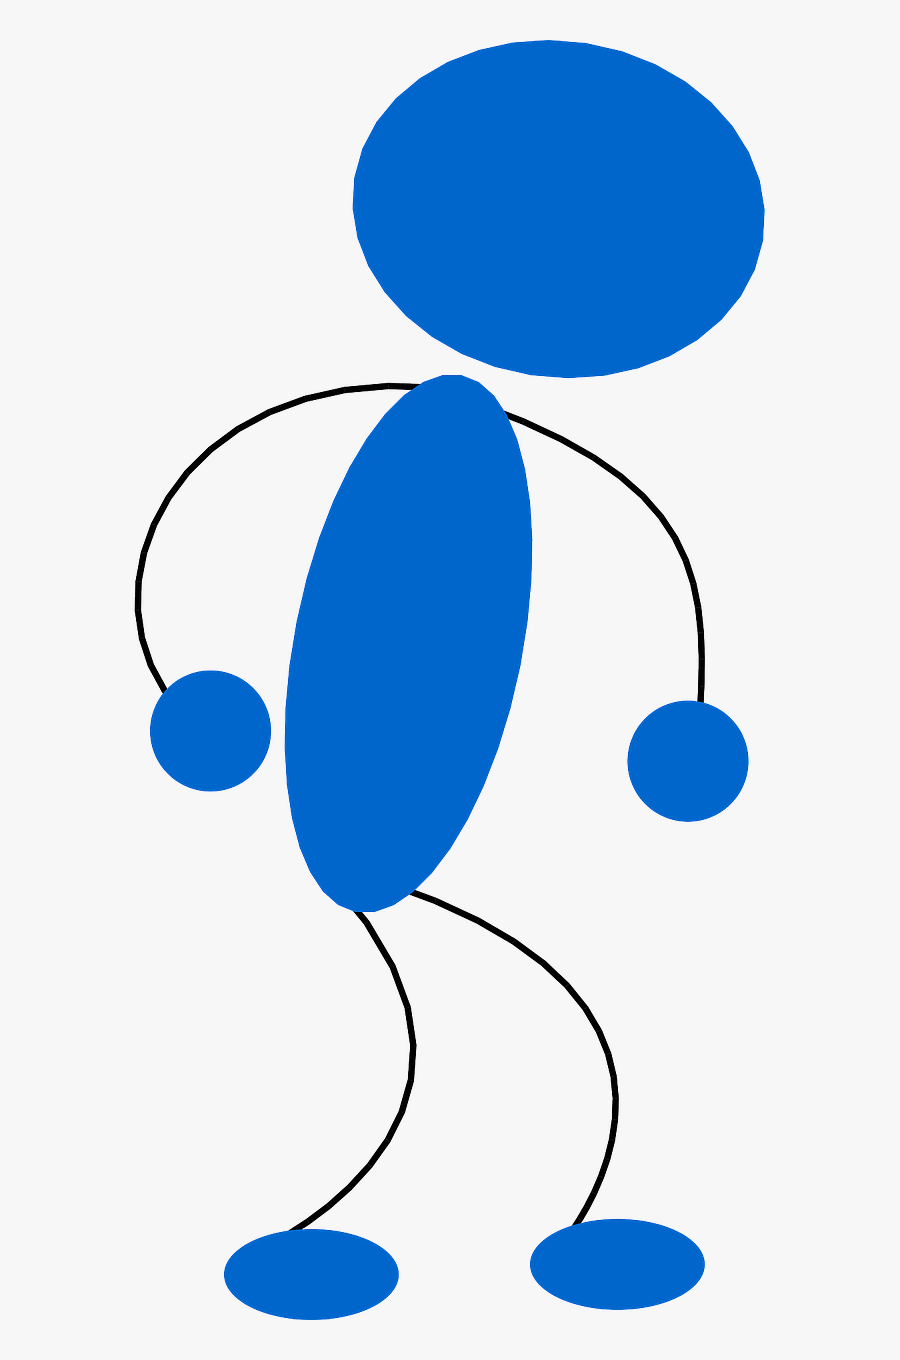 Matchstick Man Angry Frustrated Free Picture - Tired Blue Man Clipart, Transparent Clipart